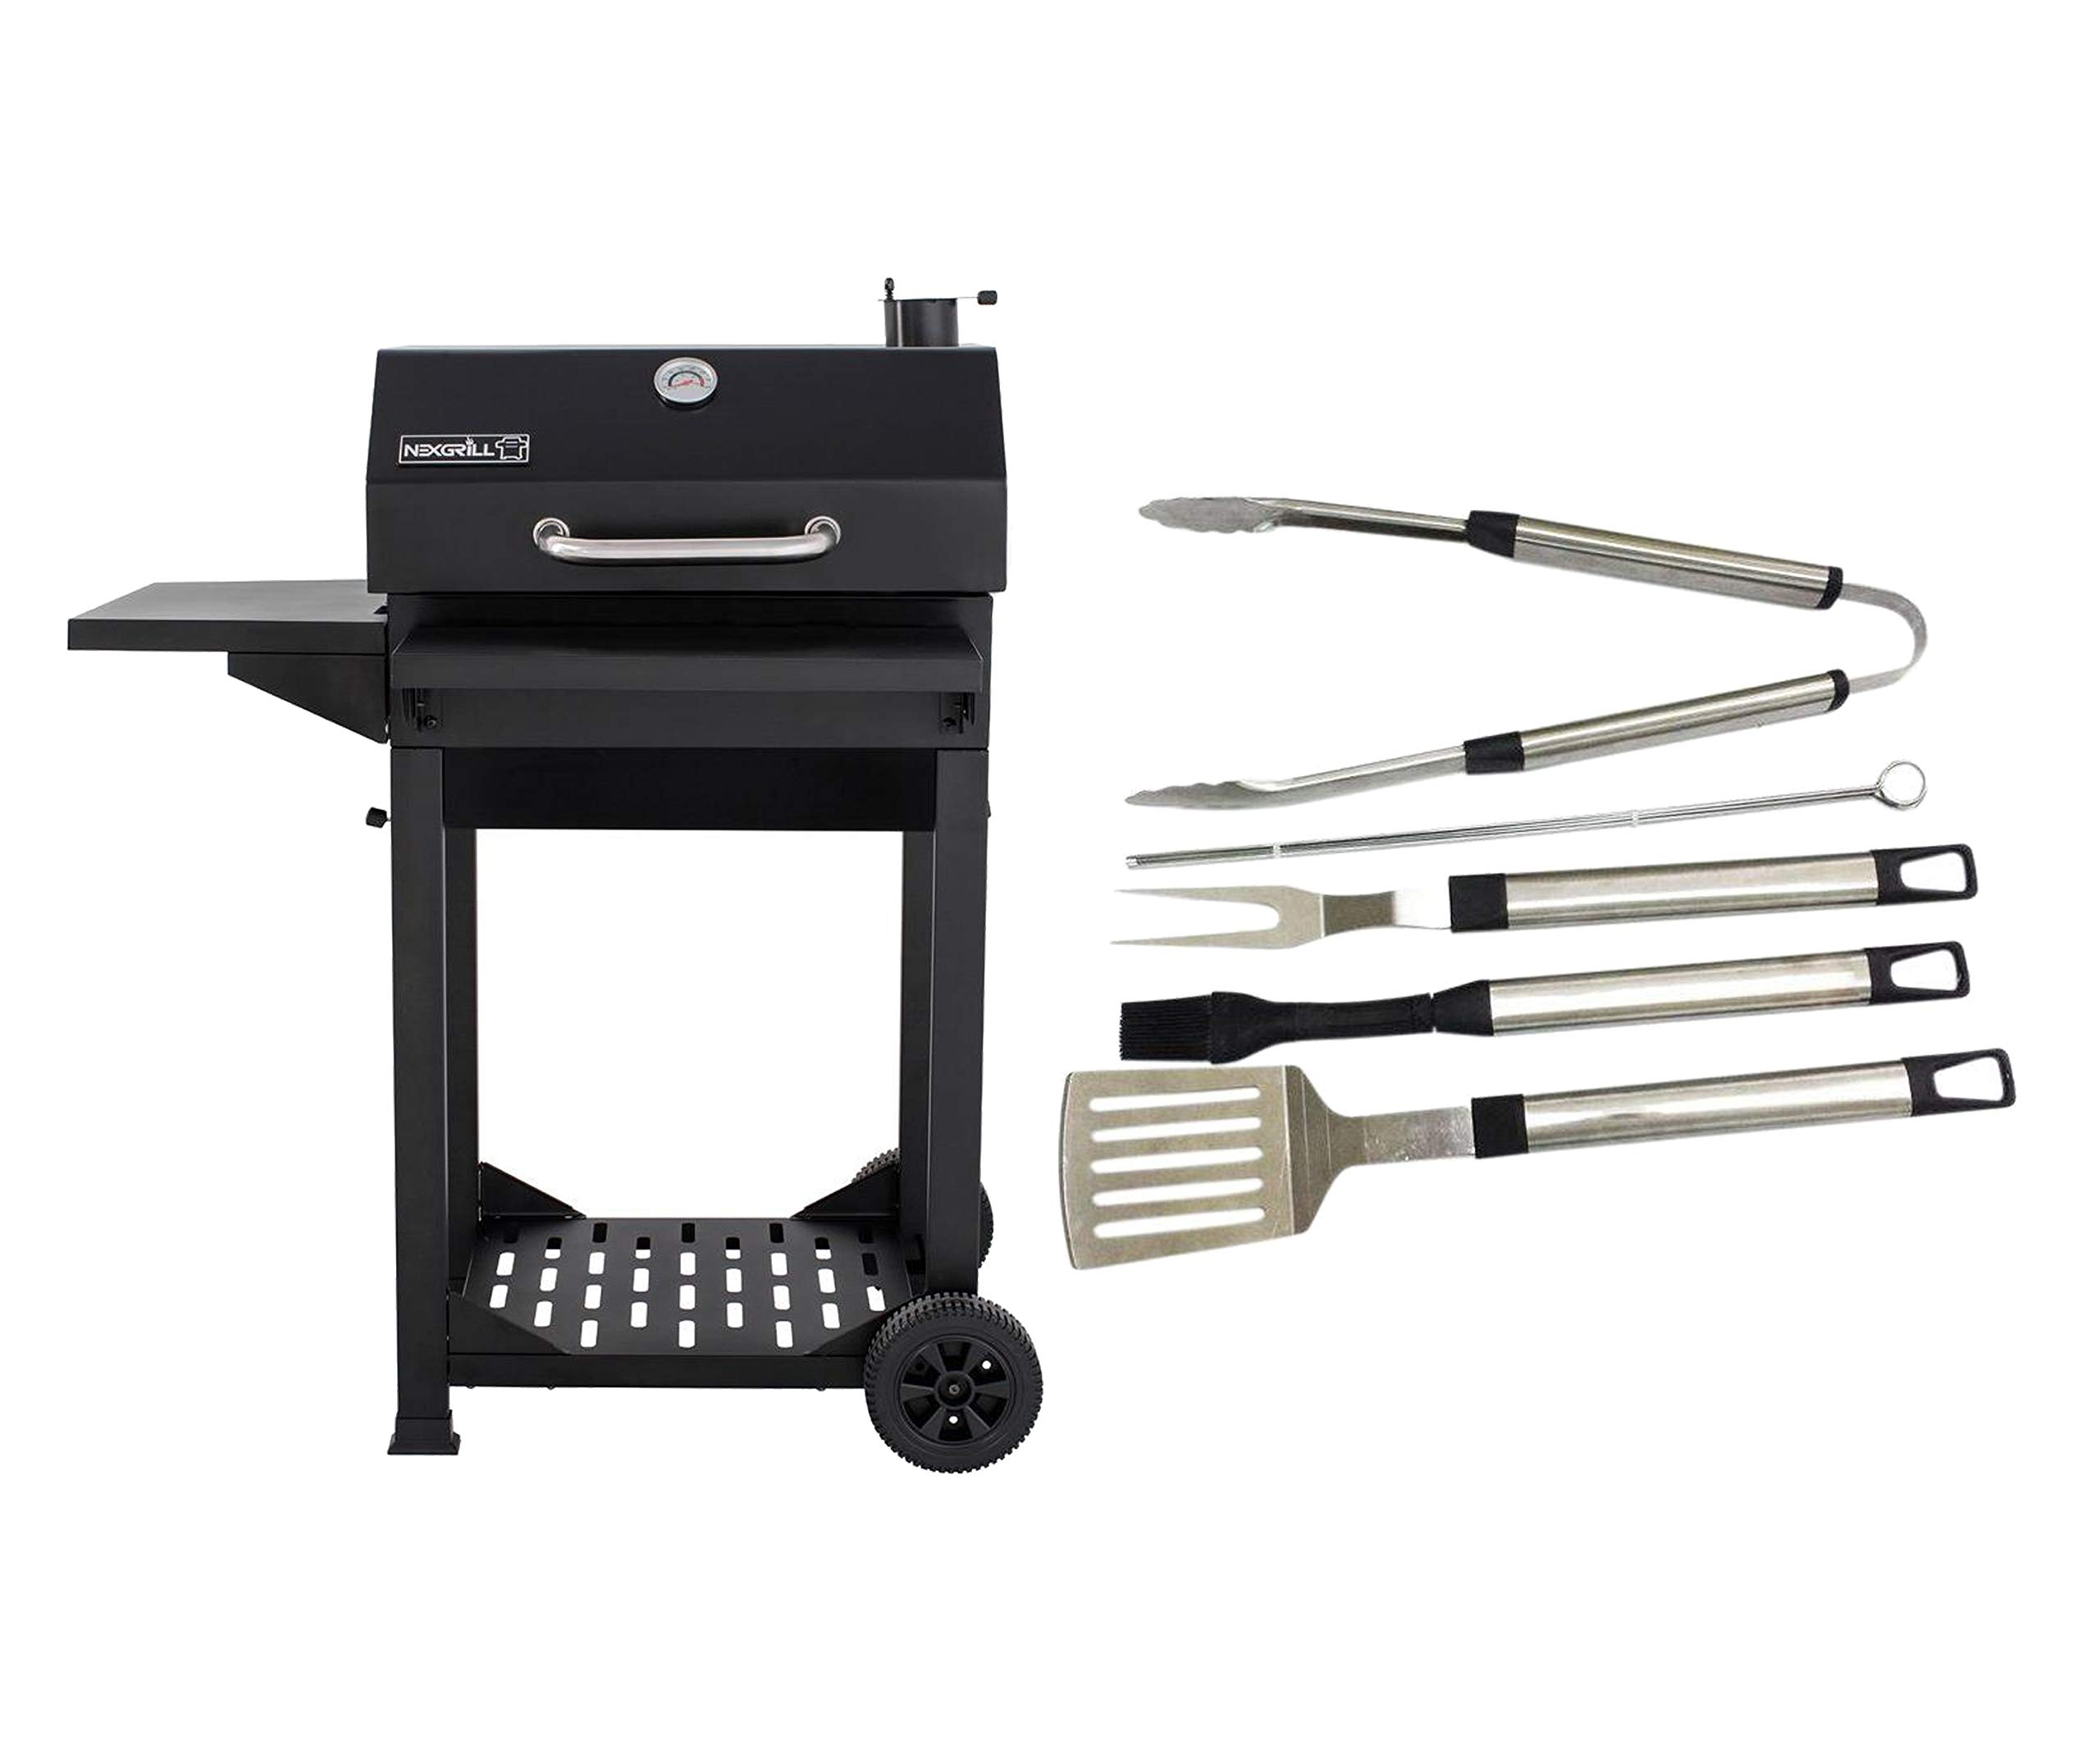 Nexgrill Cart-Style Charcoal Grill with Side Shelf and Foldable Front Shelf, Black Bundle with 8-Piece Grill Tool Set by Nexgrill